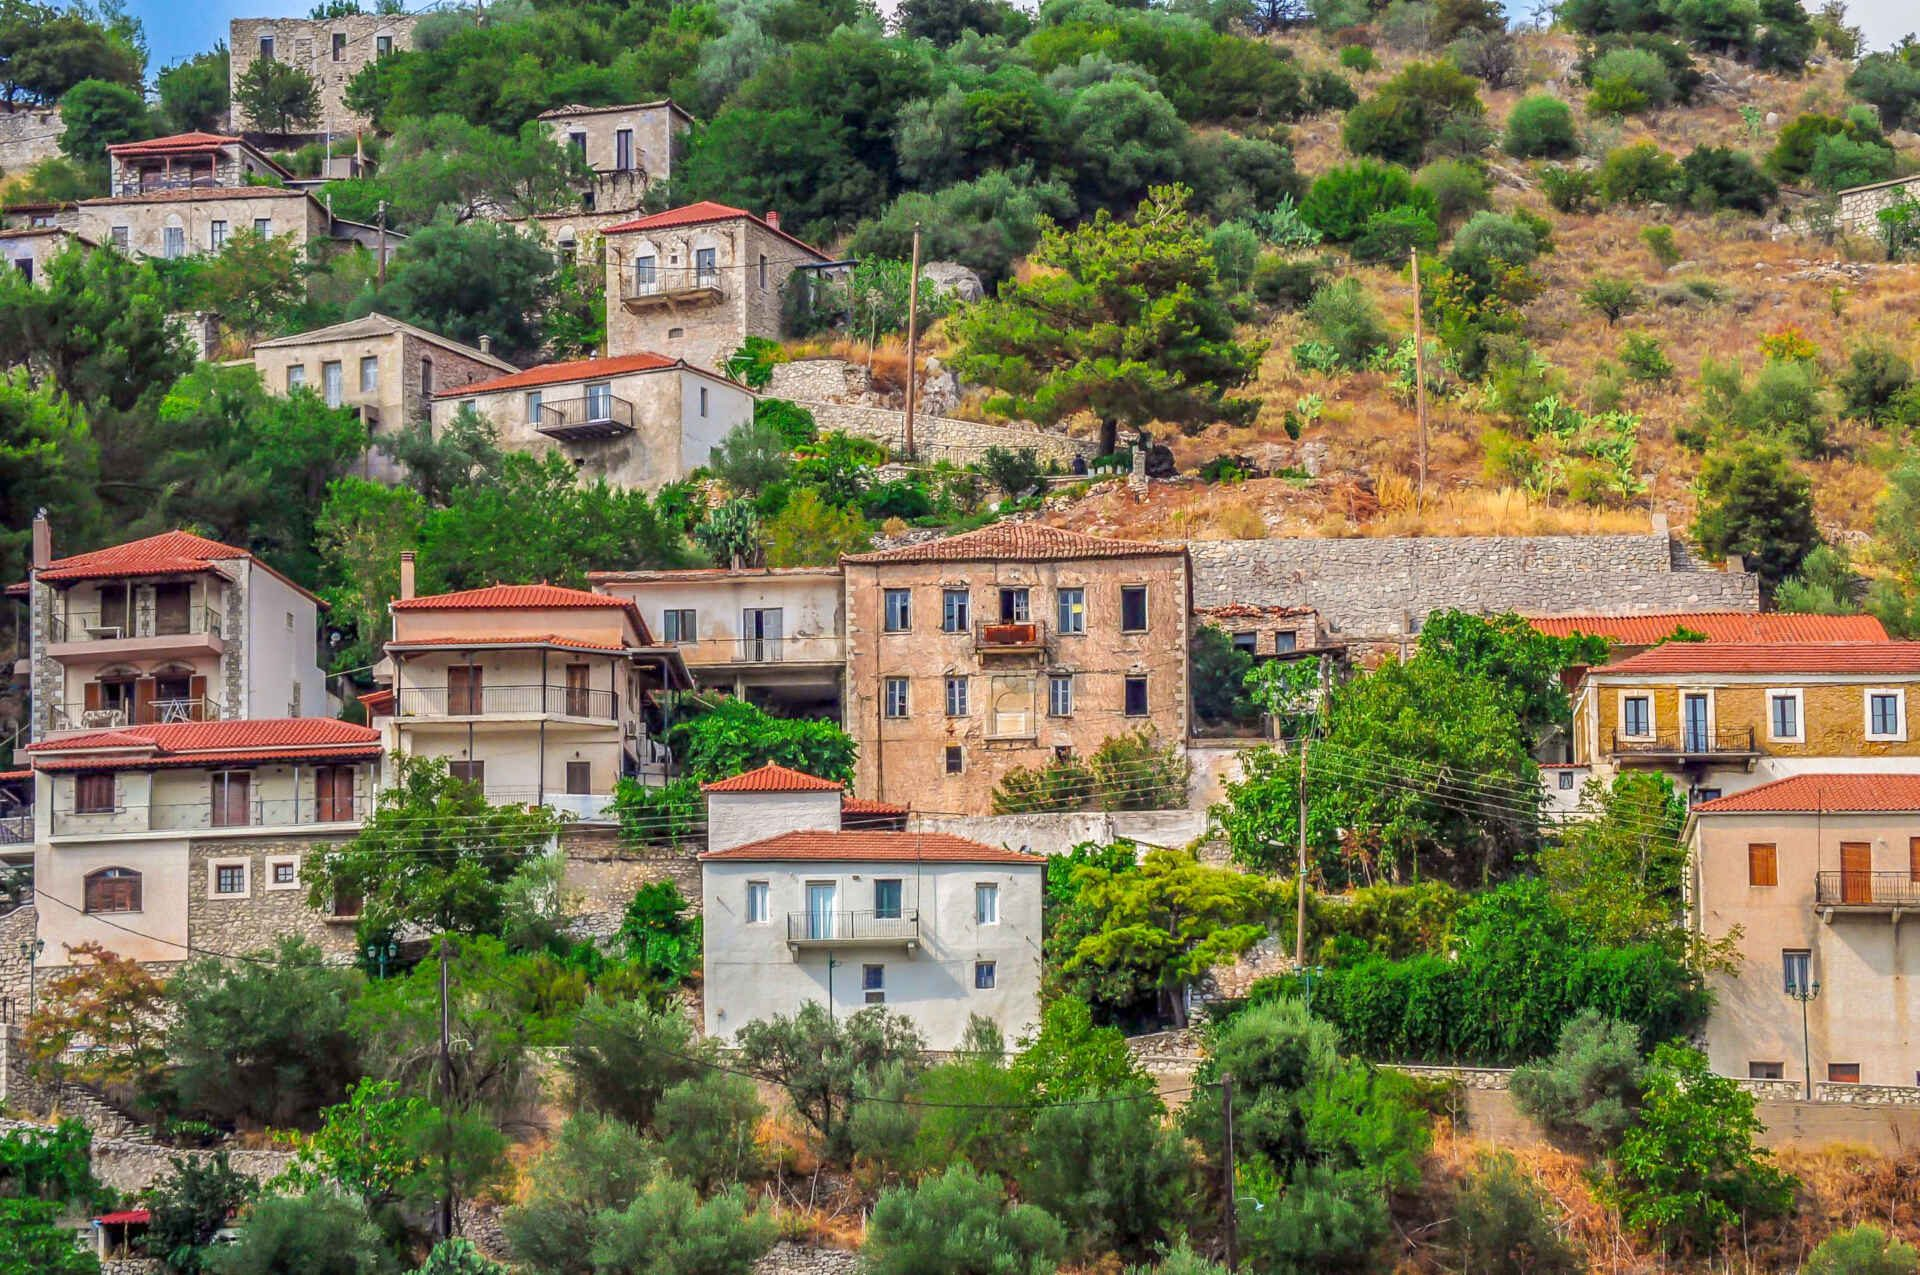 The village of Karytaina in Arcadia, Peloponnese Greece. Near Megalopoli.